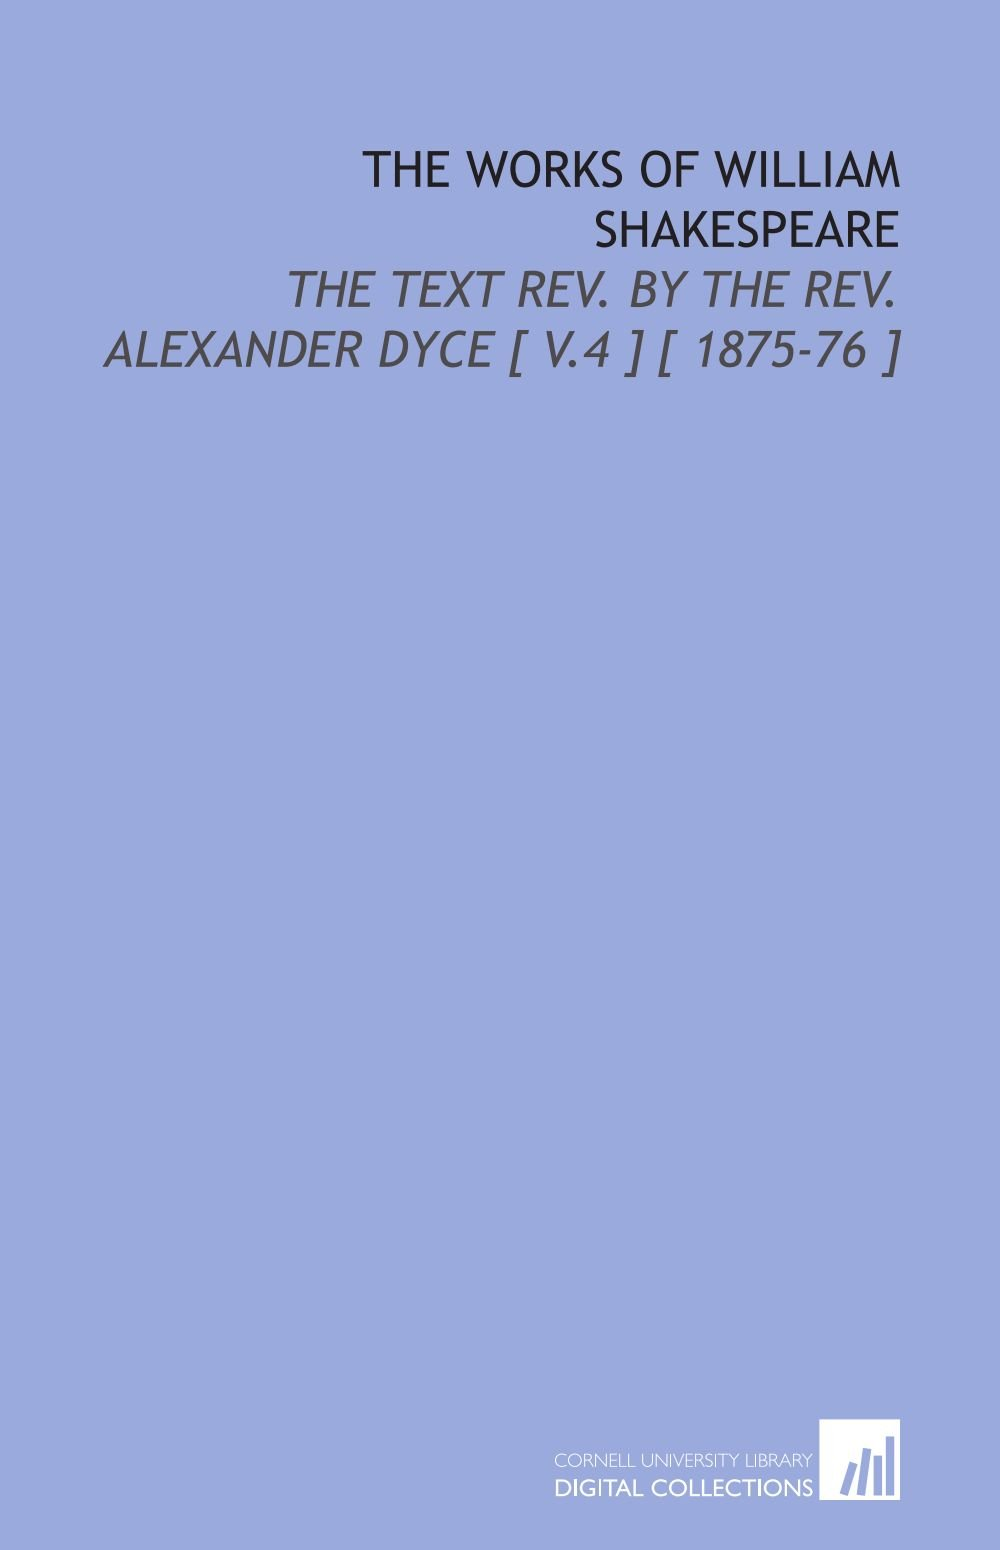 Download The Works of William Shakespeare: The Text Rev. By the Rev. Alexander Dyce [ V.4 ] [ 1875-76 ] pdf epub